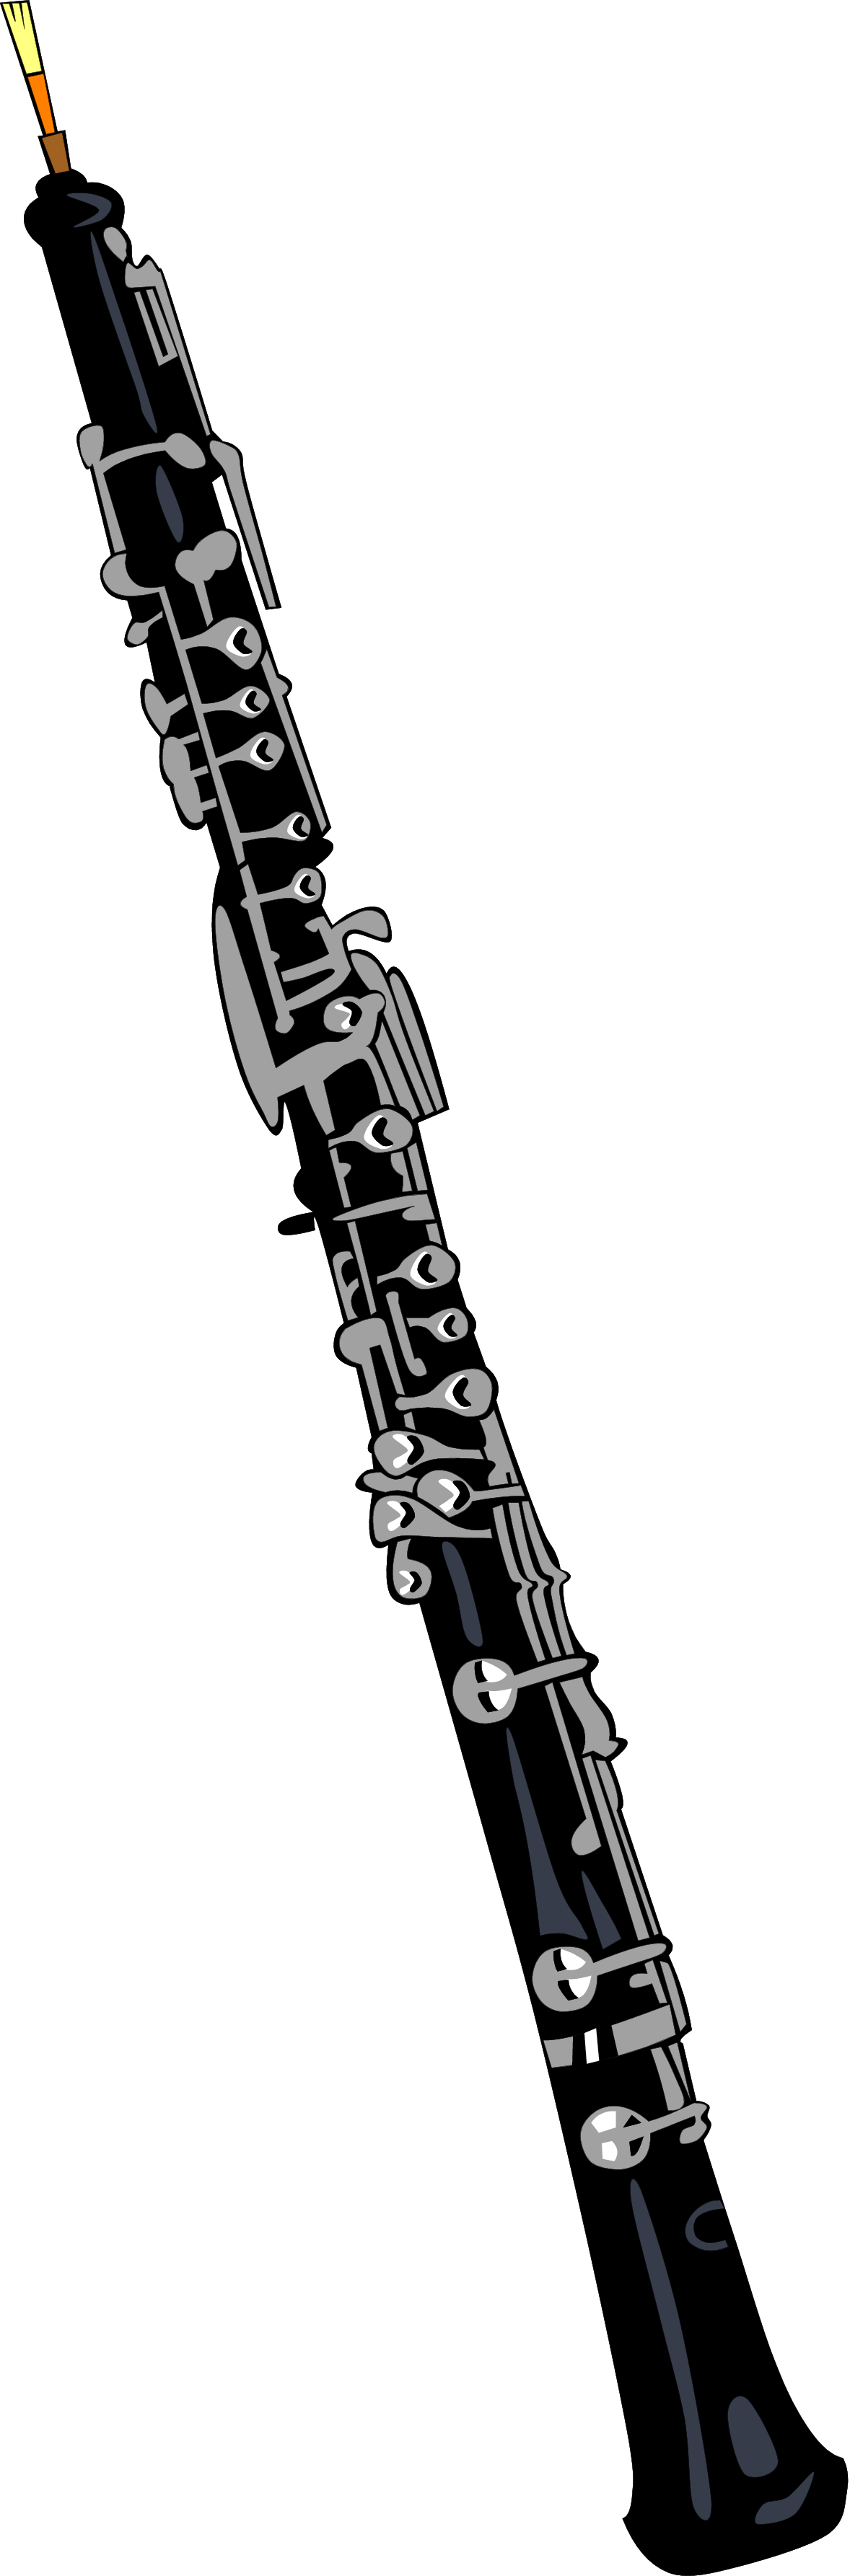 Clarinet clipart bass. Oboe panda free images